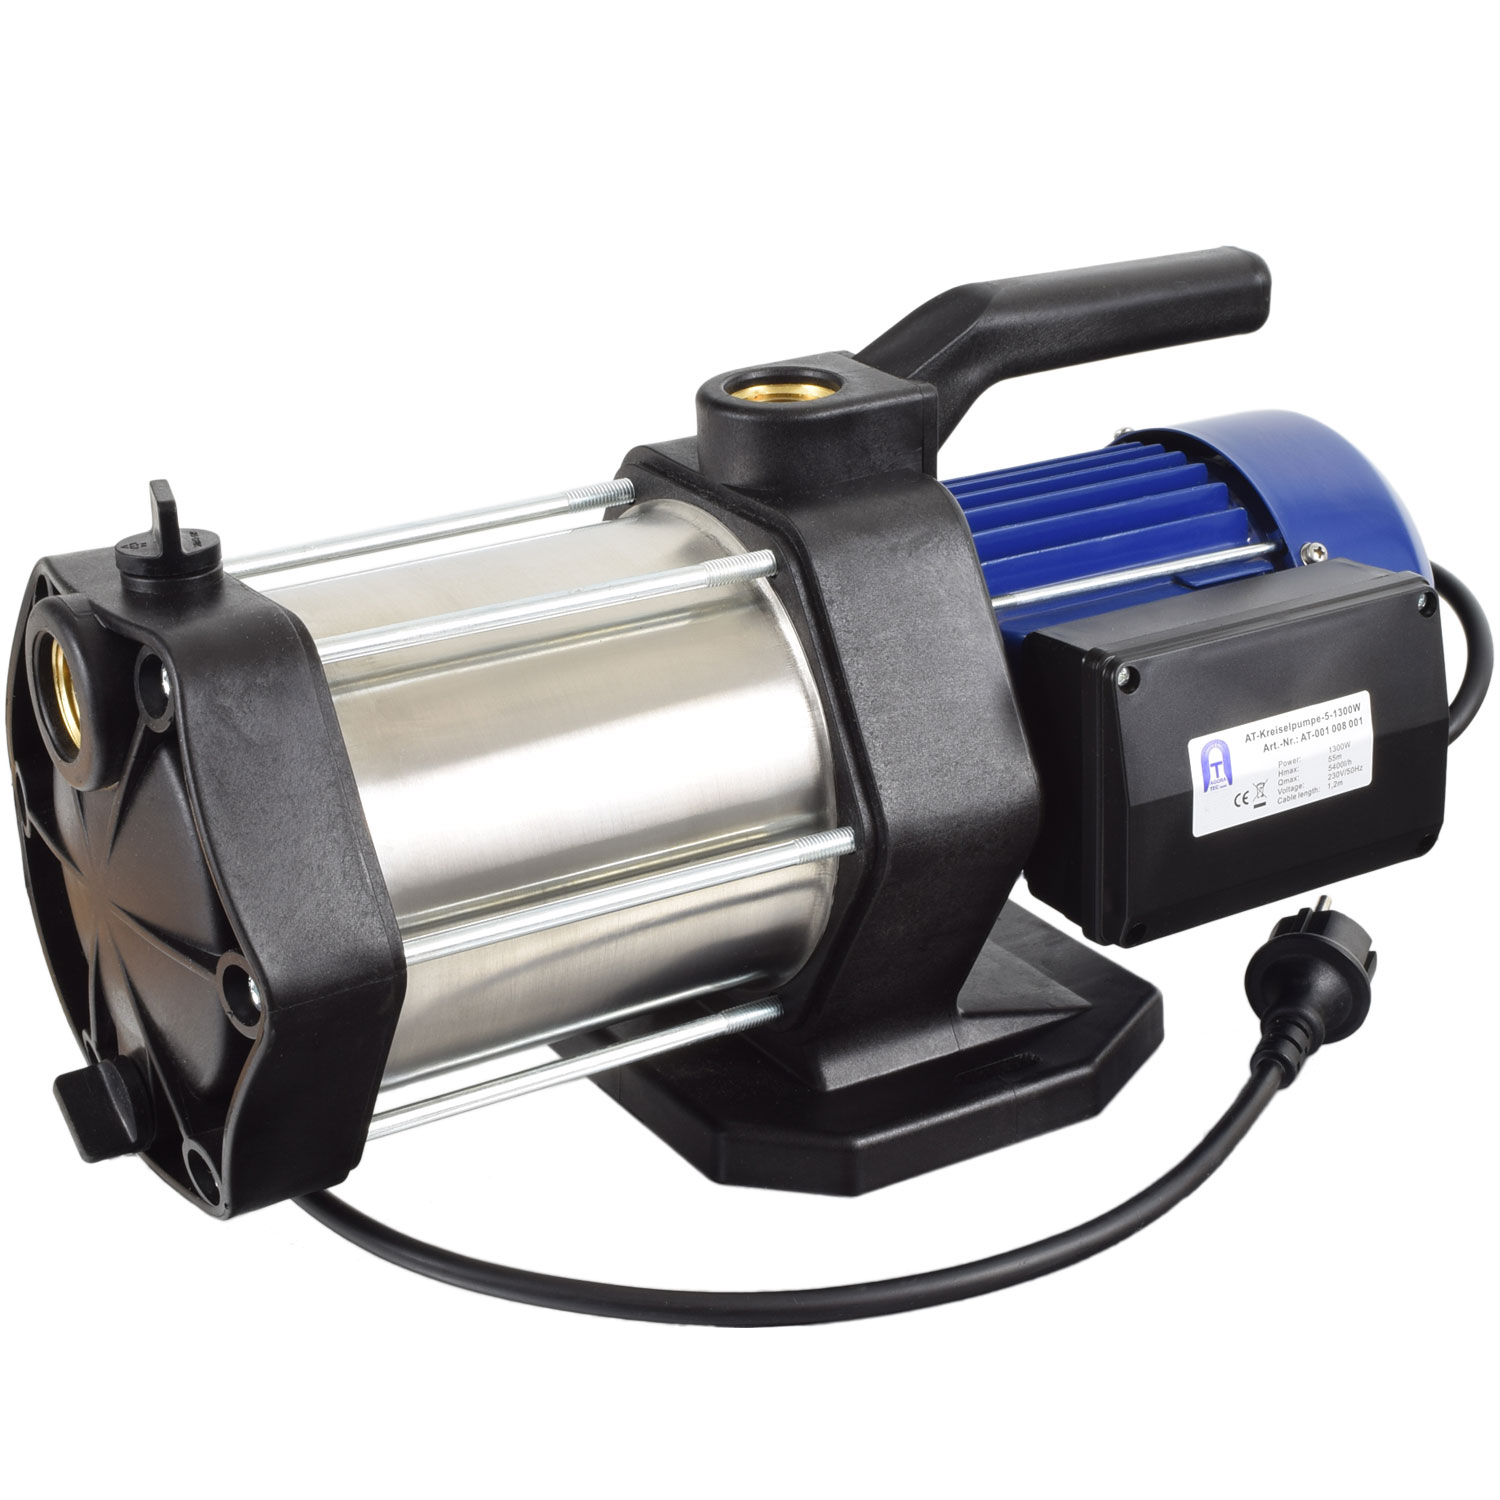 kreiselpumpe gartenpumpe edelstahl hauswasserwerk. Black Bedroom Furniture Sets. Home Design Ideas